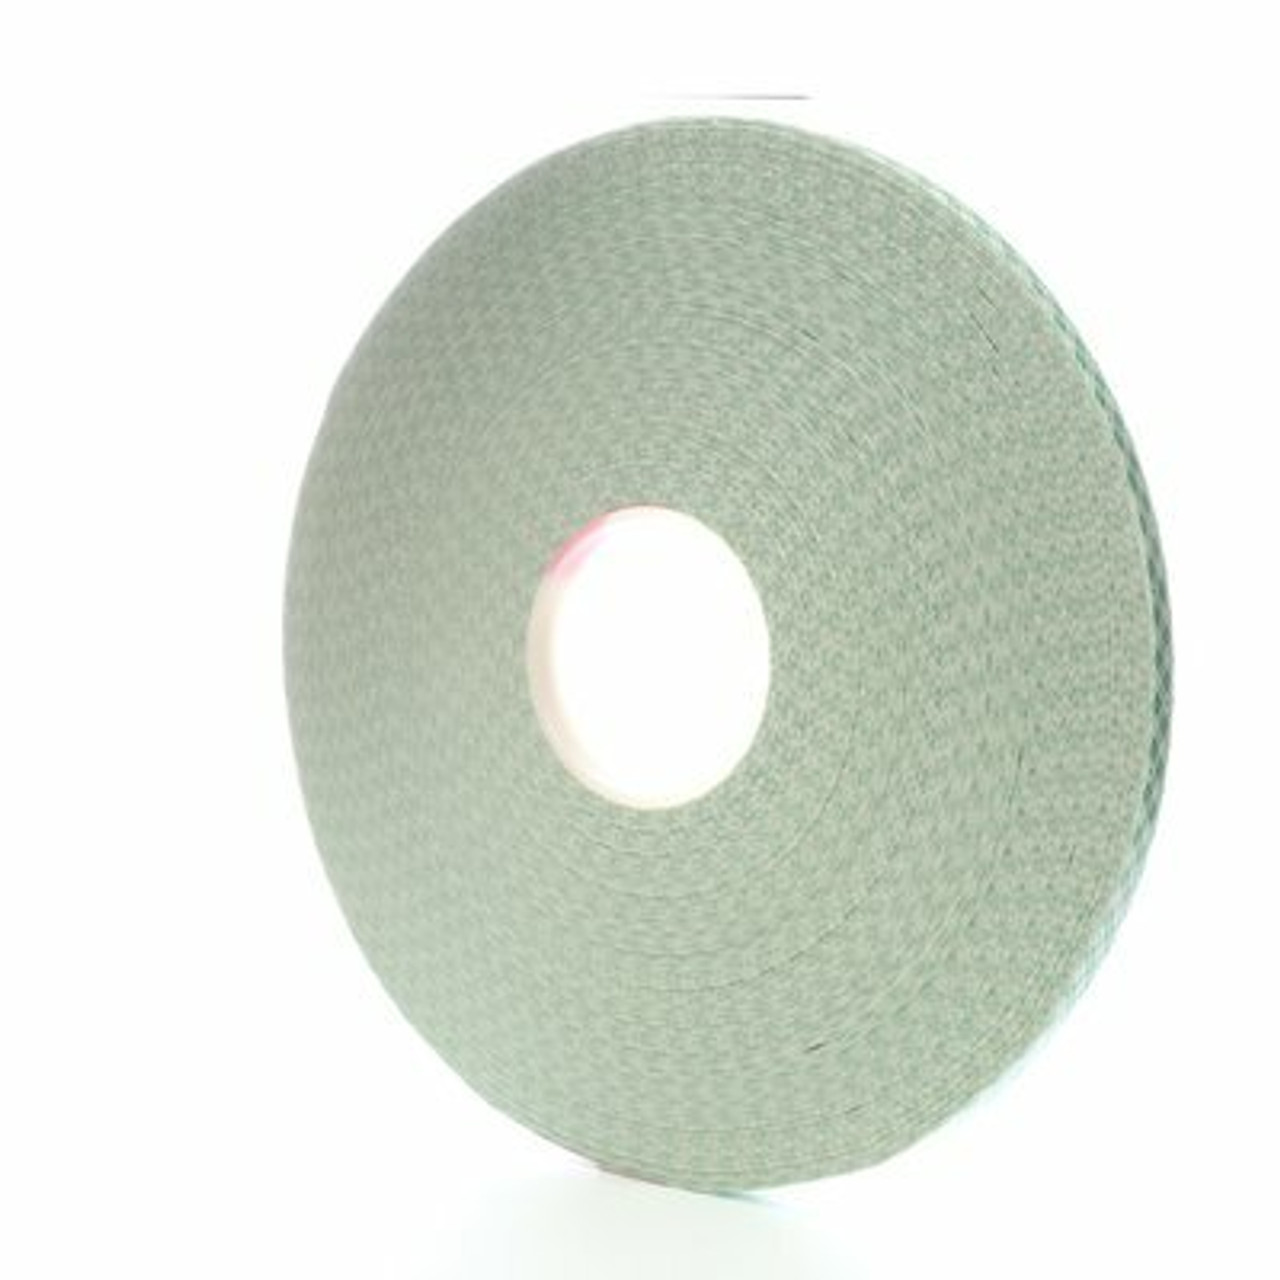 3M™ Double Coated Urethane Foam Tape 4032, Off White, 1 in x 72 yd, 31 mil, 9 rolls per case